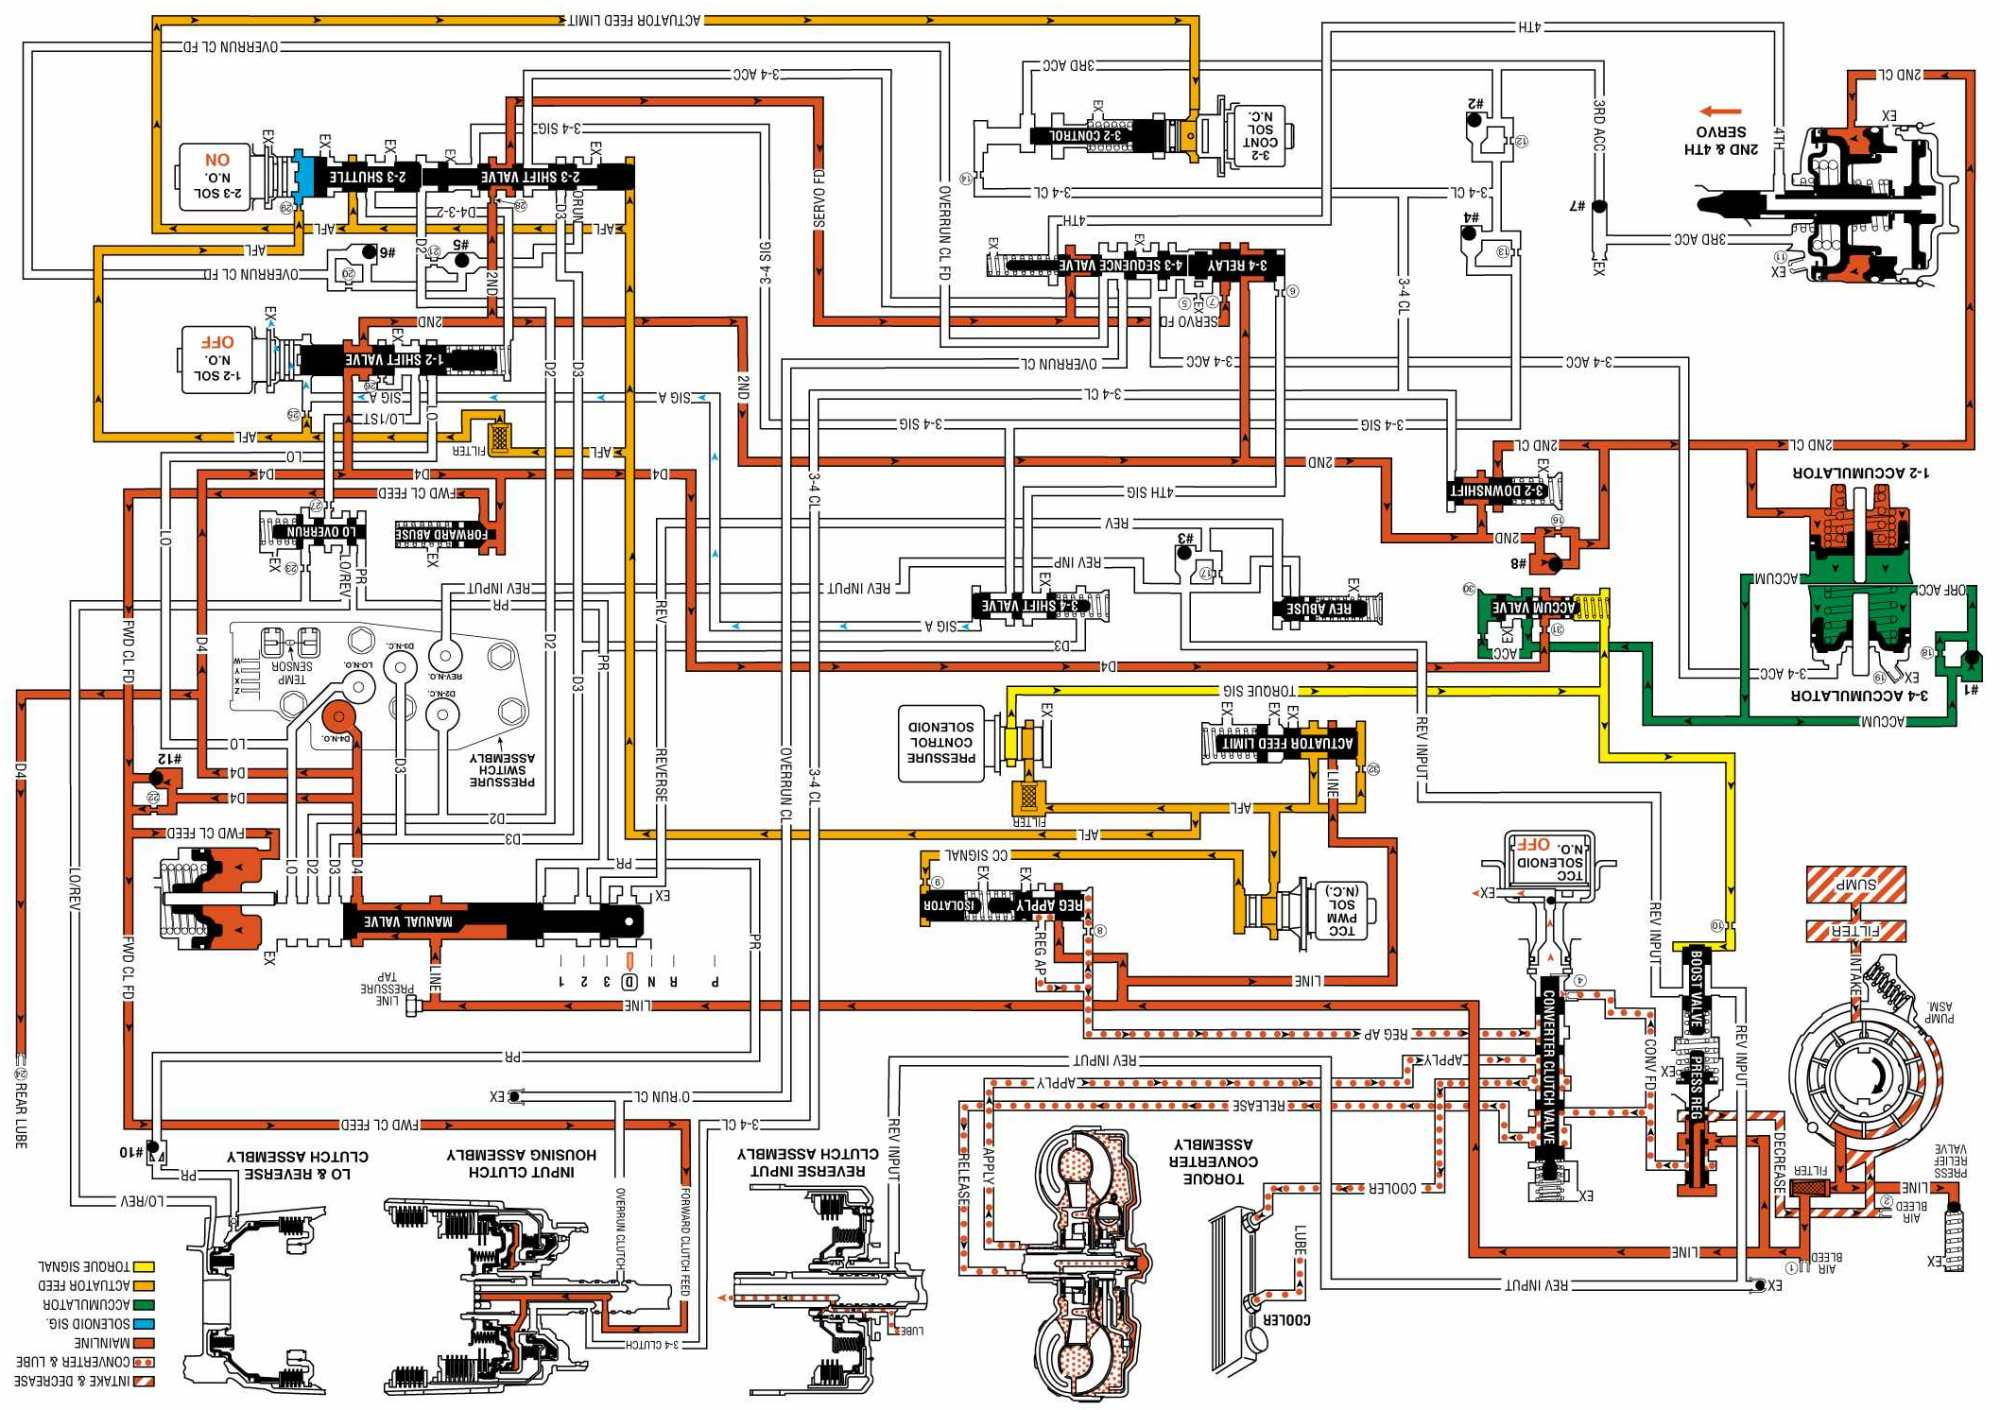 hight resolution of 4l80e hydraulic diagram wiring diagram host 4l80e hydraulic schematic 4l80e hydraulic diagram